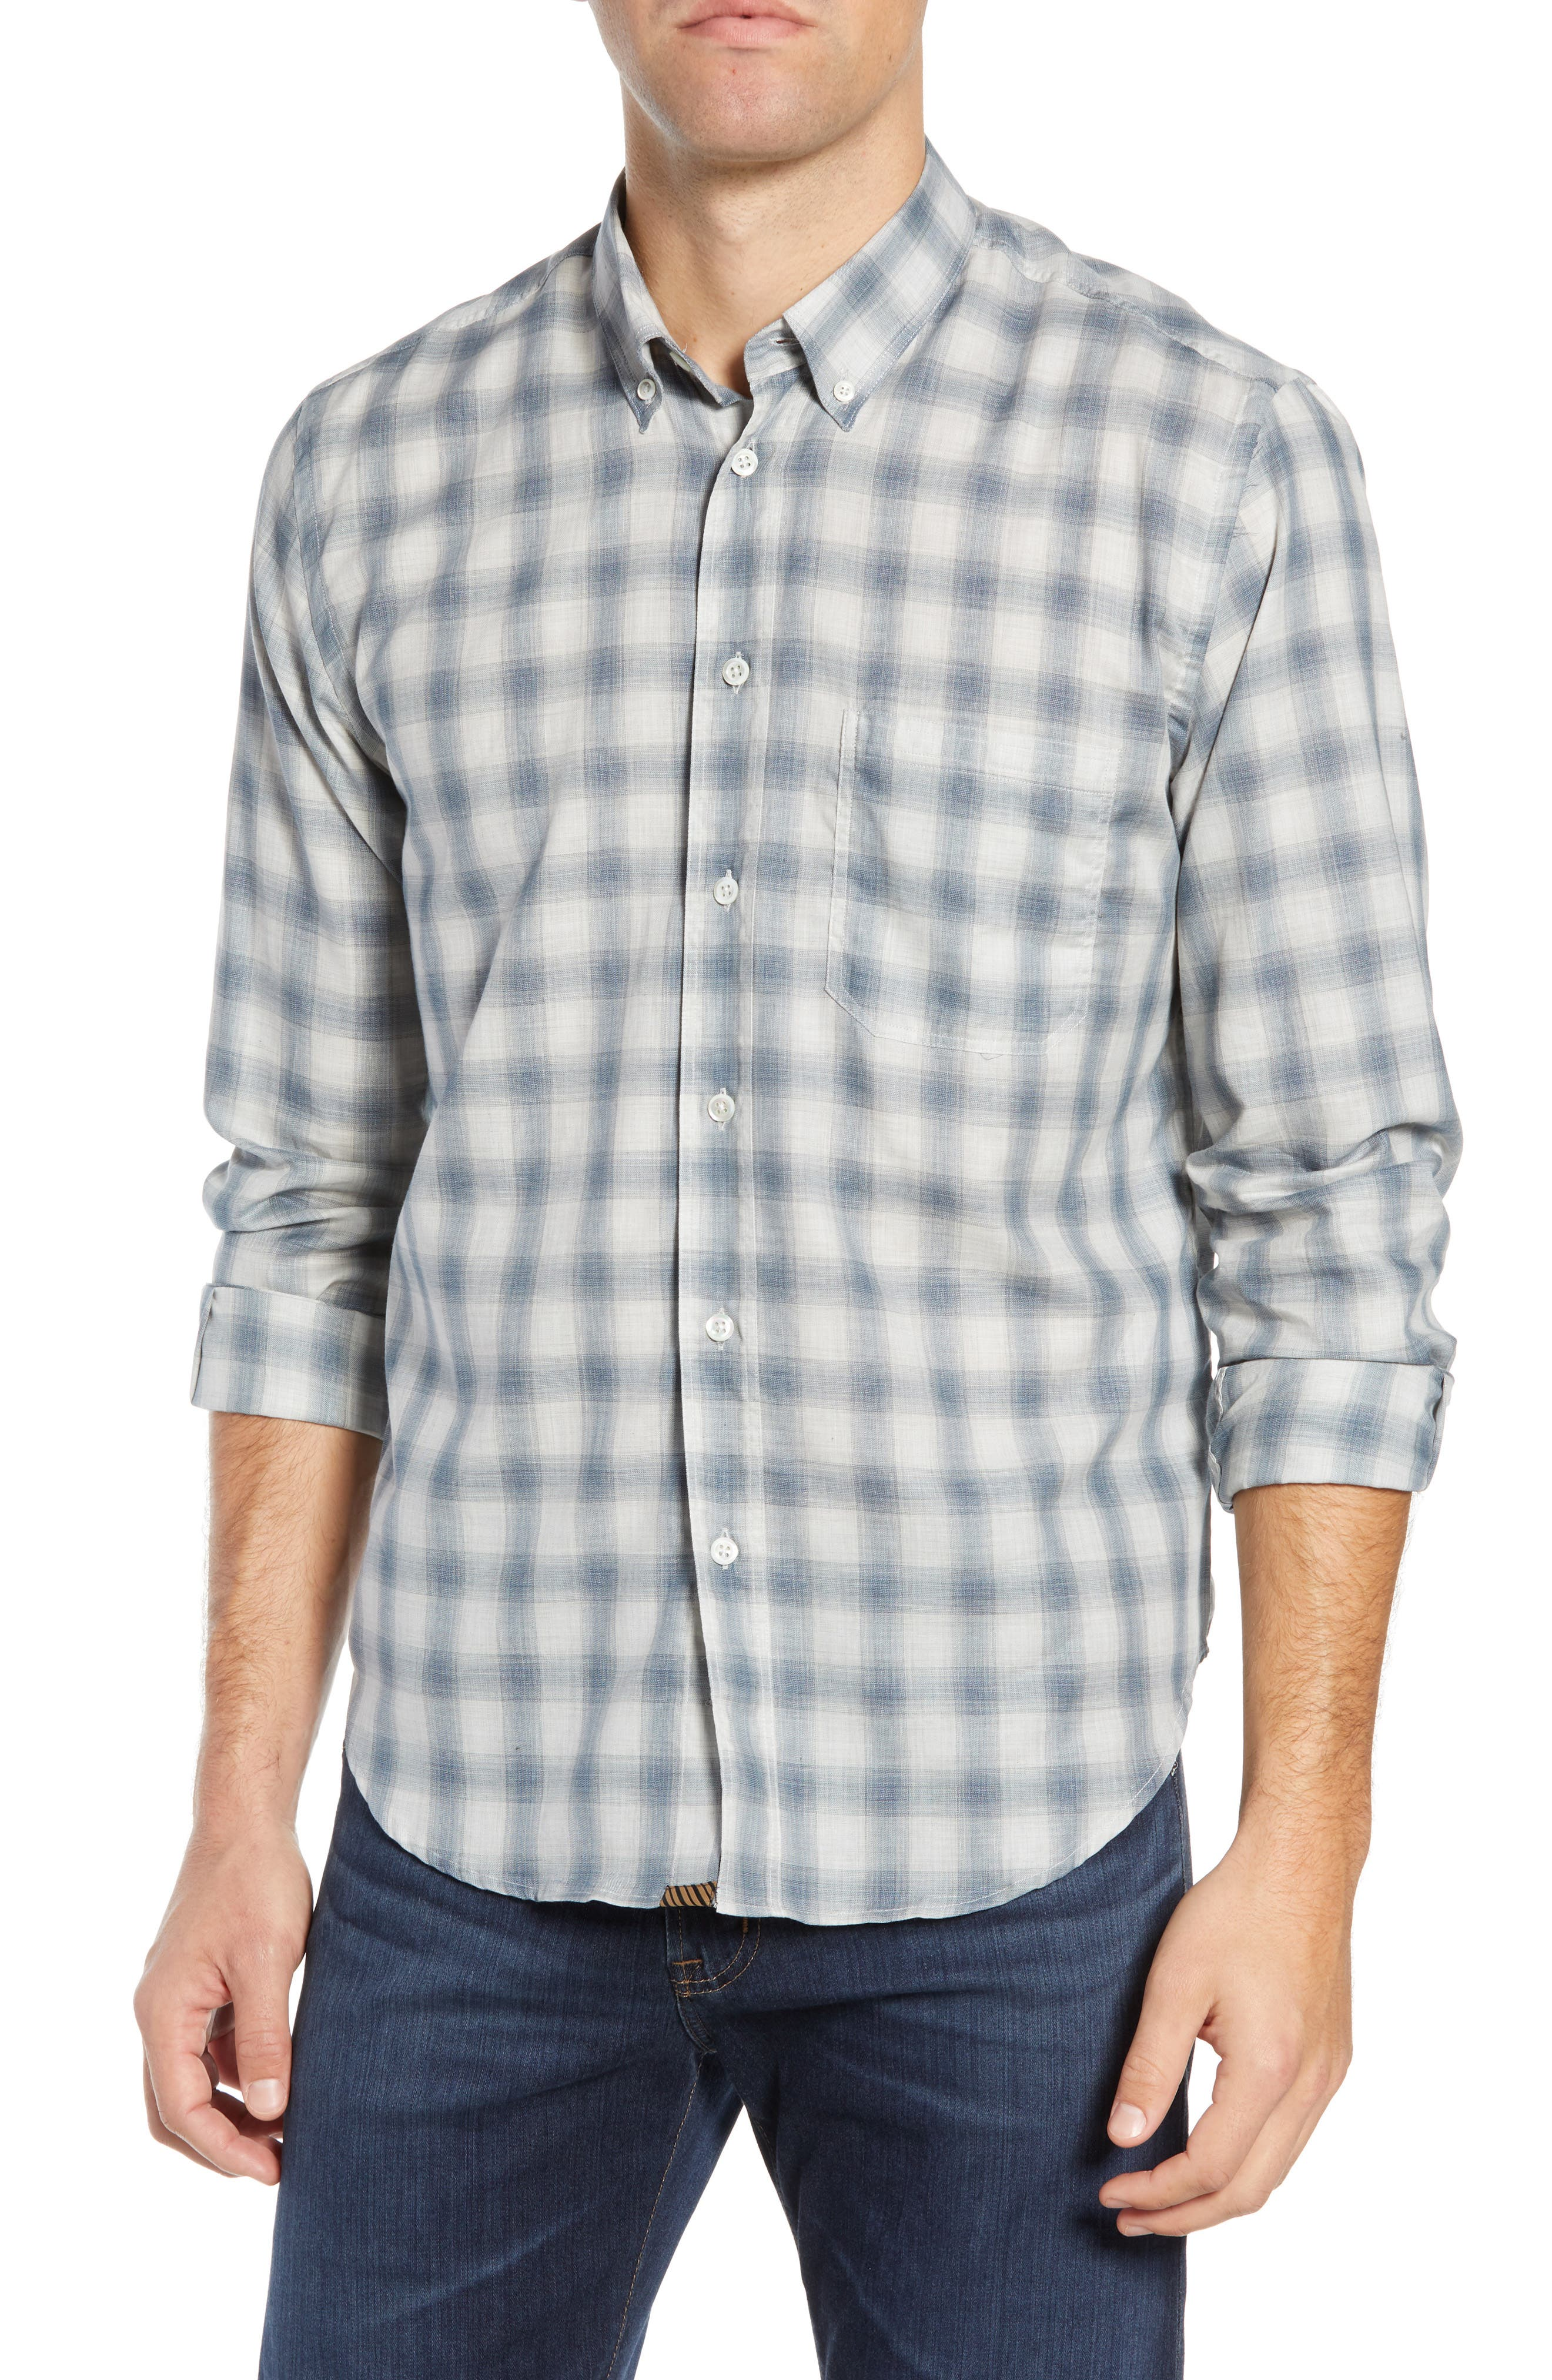 Tuscumbia Regular Fit Pattern Sport Shirt,                             Main thumbnail 1, color,                             BLUE/ GREY